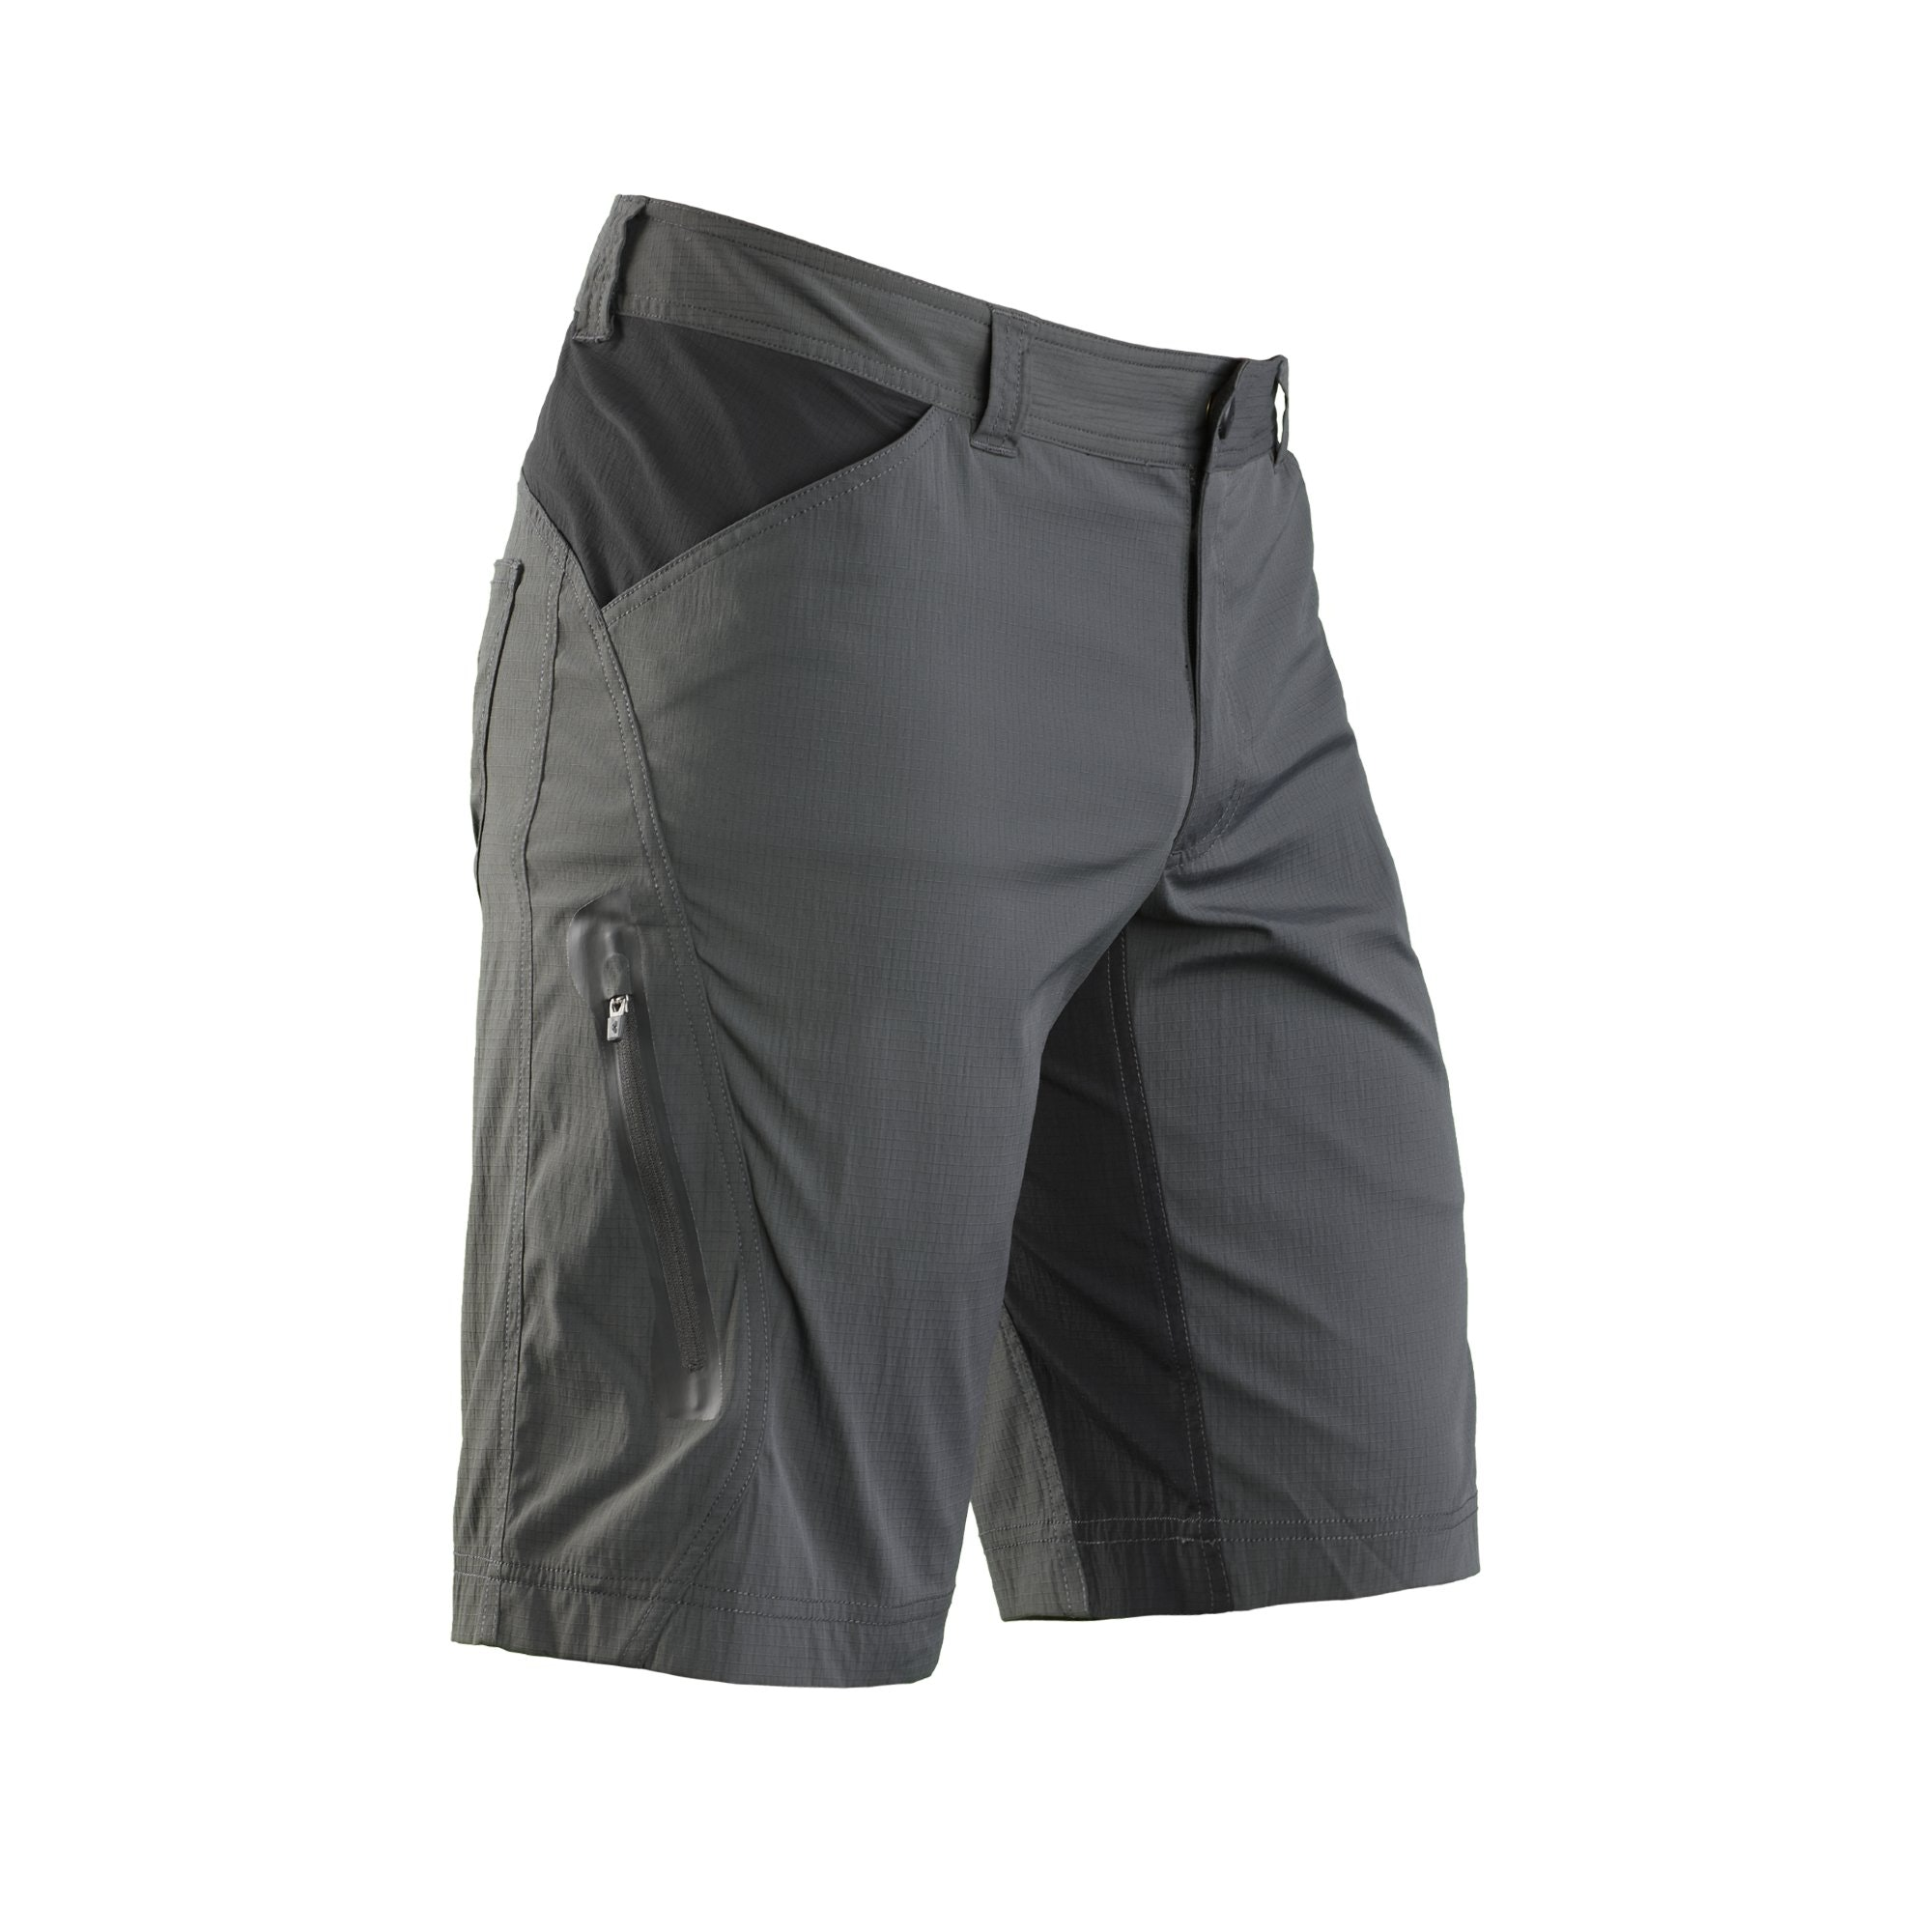 Shop the best selection of men's hiking and climbing shorts at 0549sahibi.tk, where you'll find premium outdoor gear and clothing and experts to guide you through selection.